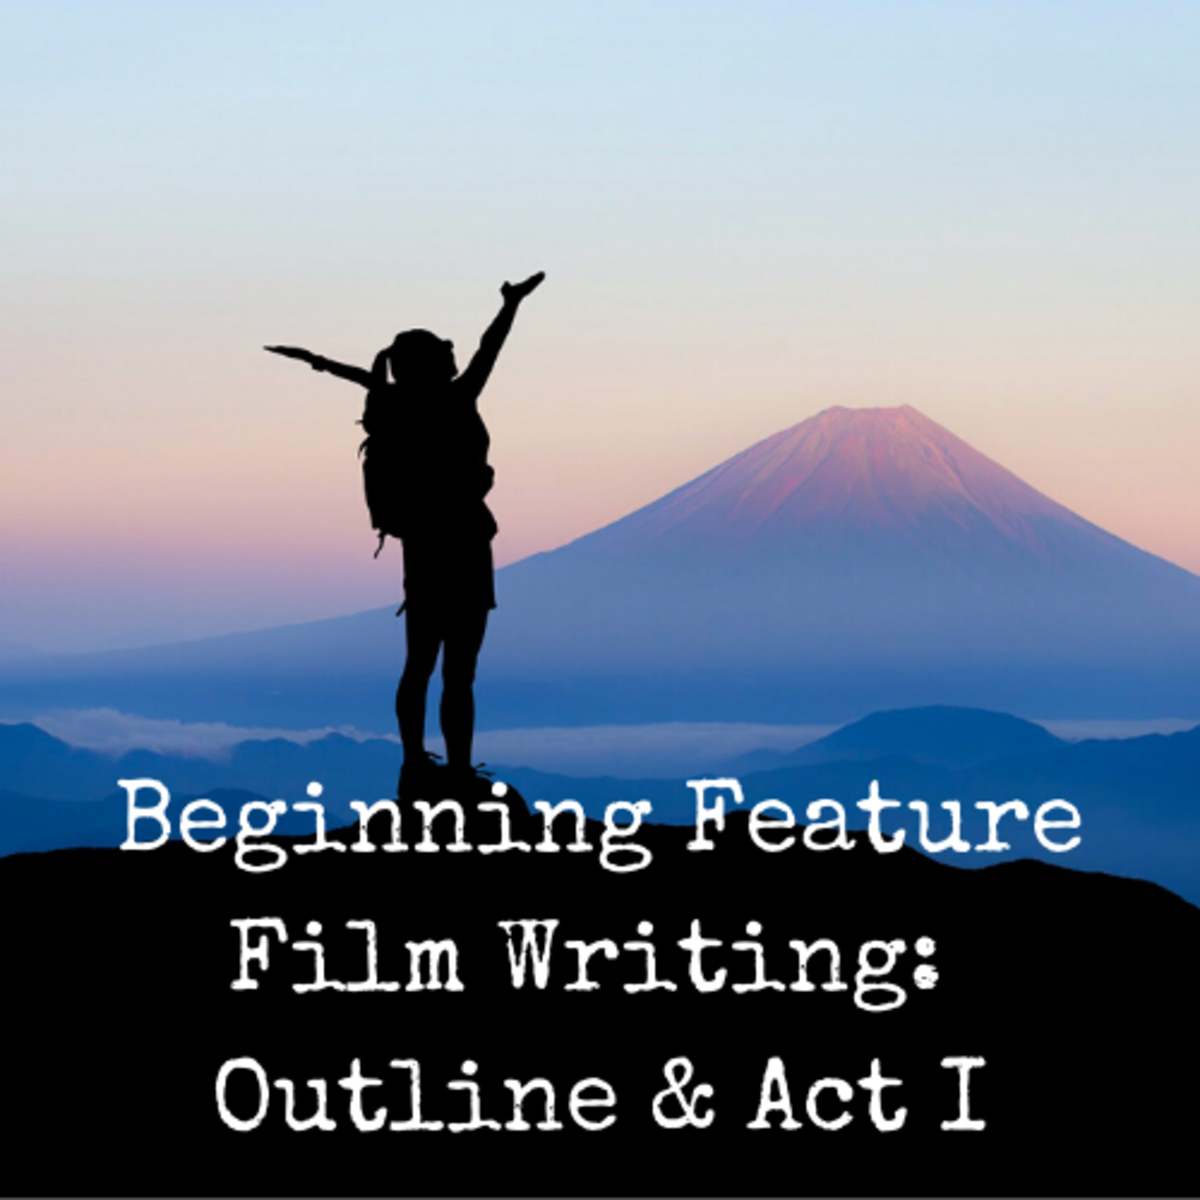 Beginning Feature Film Writing_ Outline & Act I